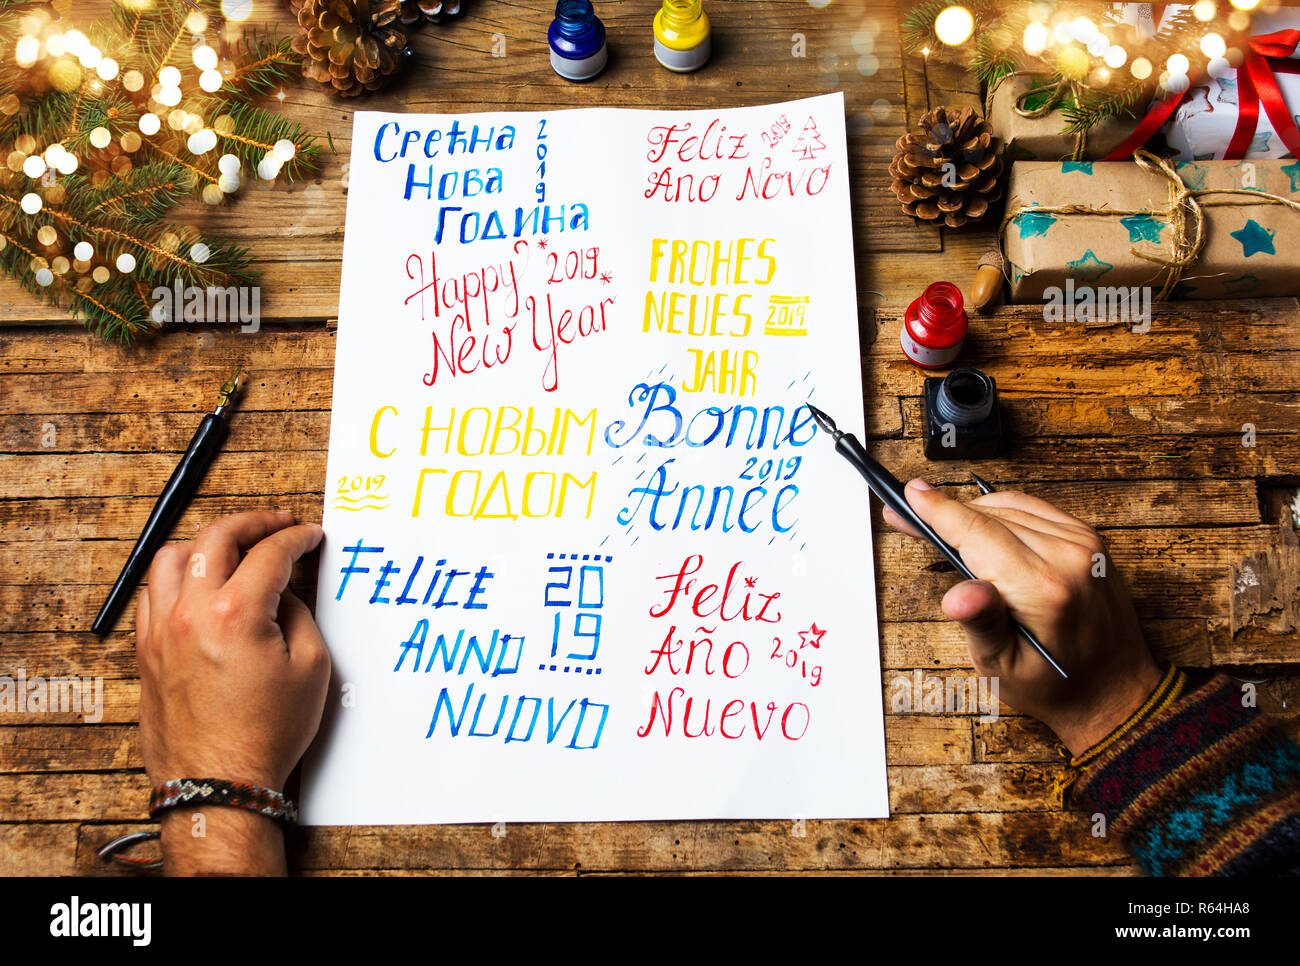 Person writing a Happy new year card in various languages - Stock Image